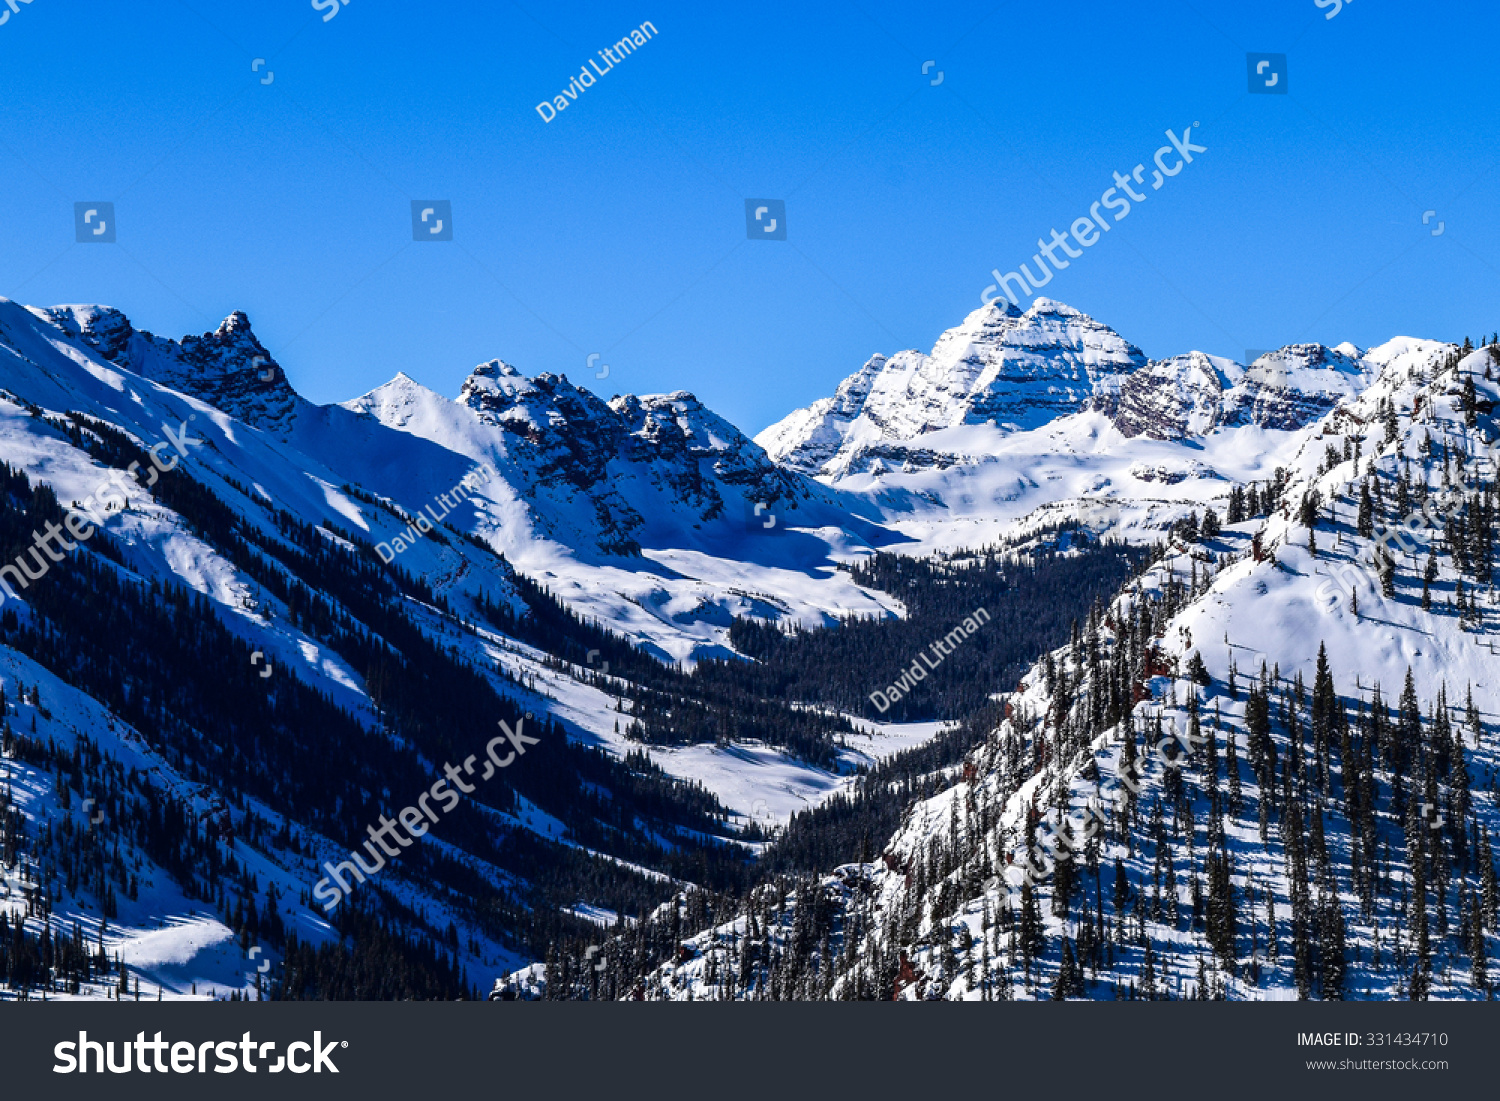 Rocky Mountains Maroon Bells.  The Rocky Mountains of Colorado, with the Maroon Bells Peak, as viewed from the top of the Aspen Snowmass ski resort on a clear winter day.